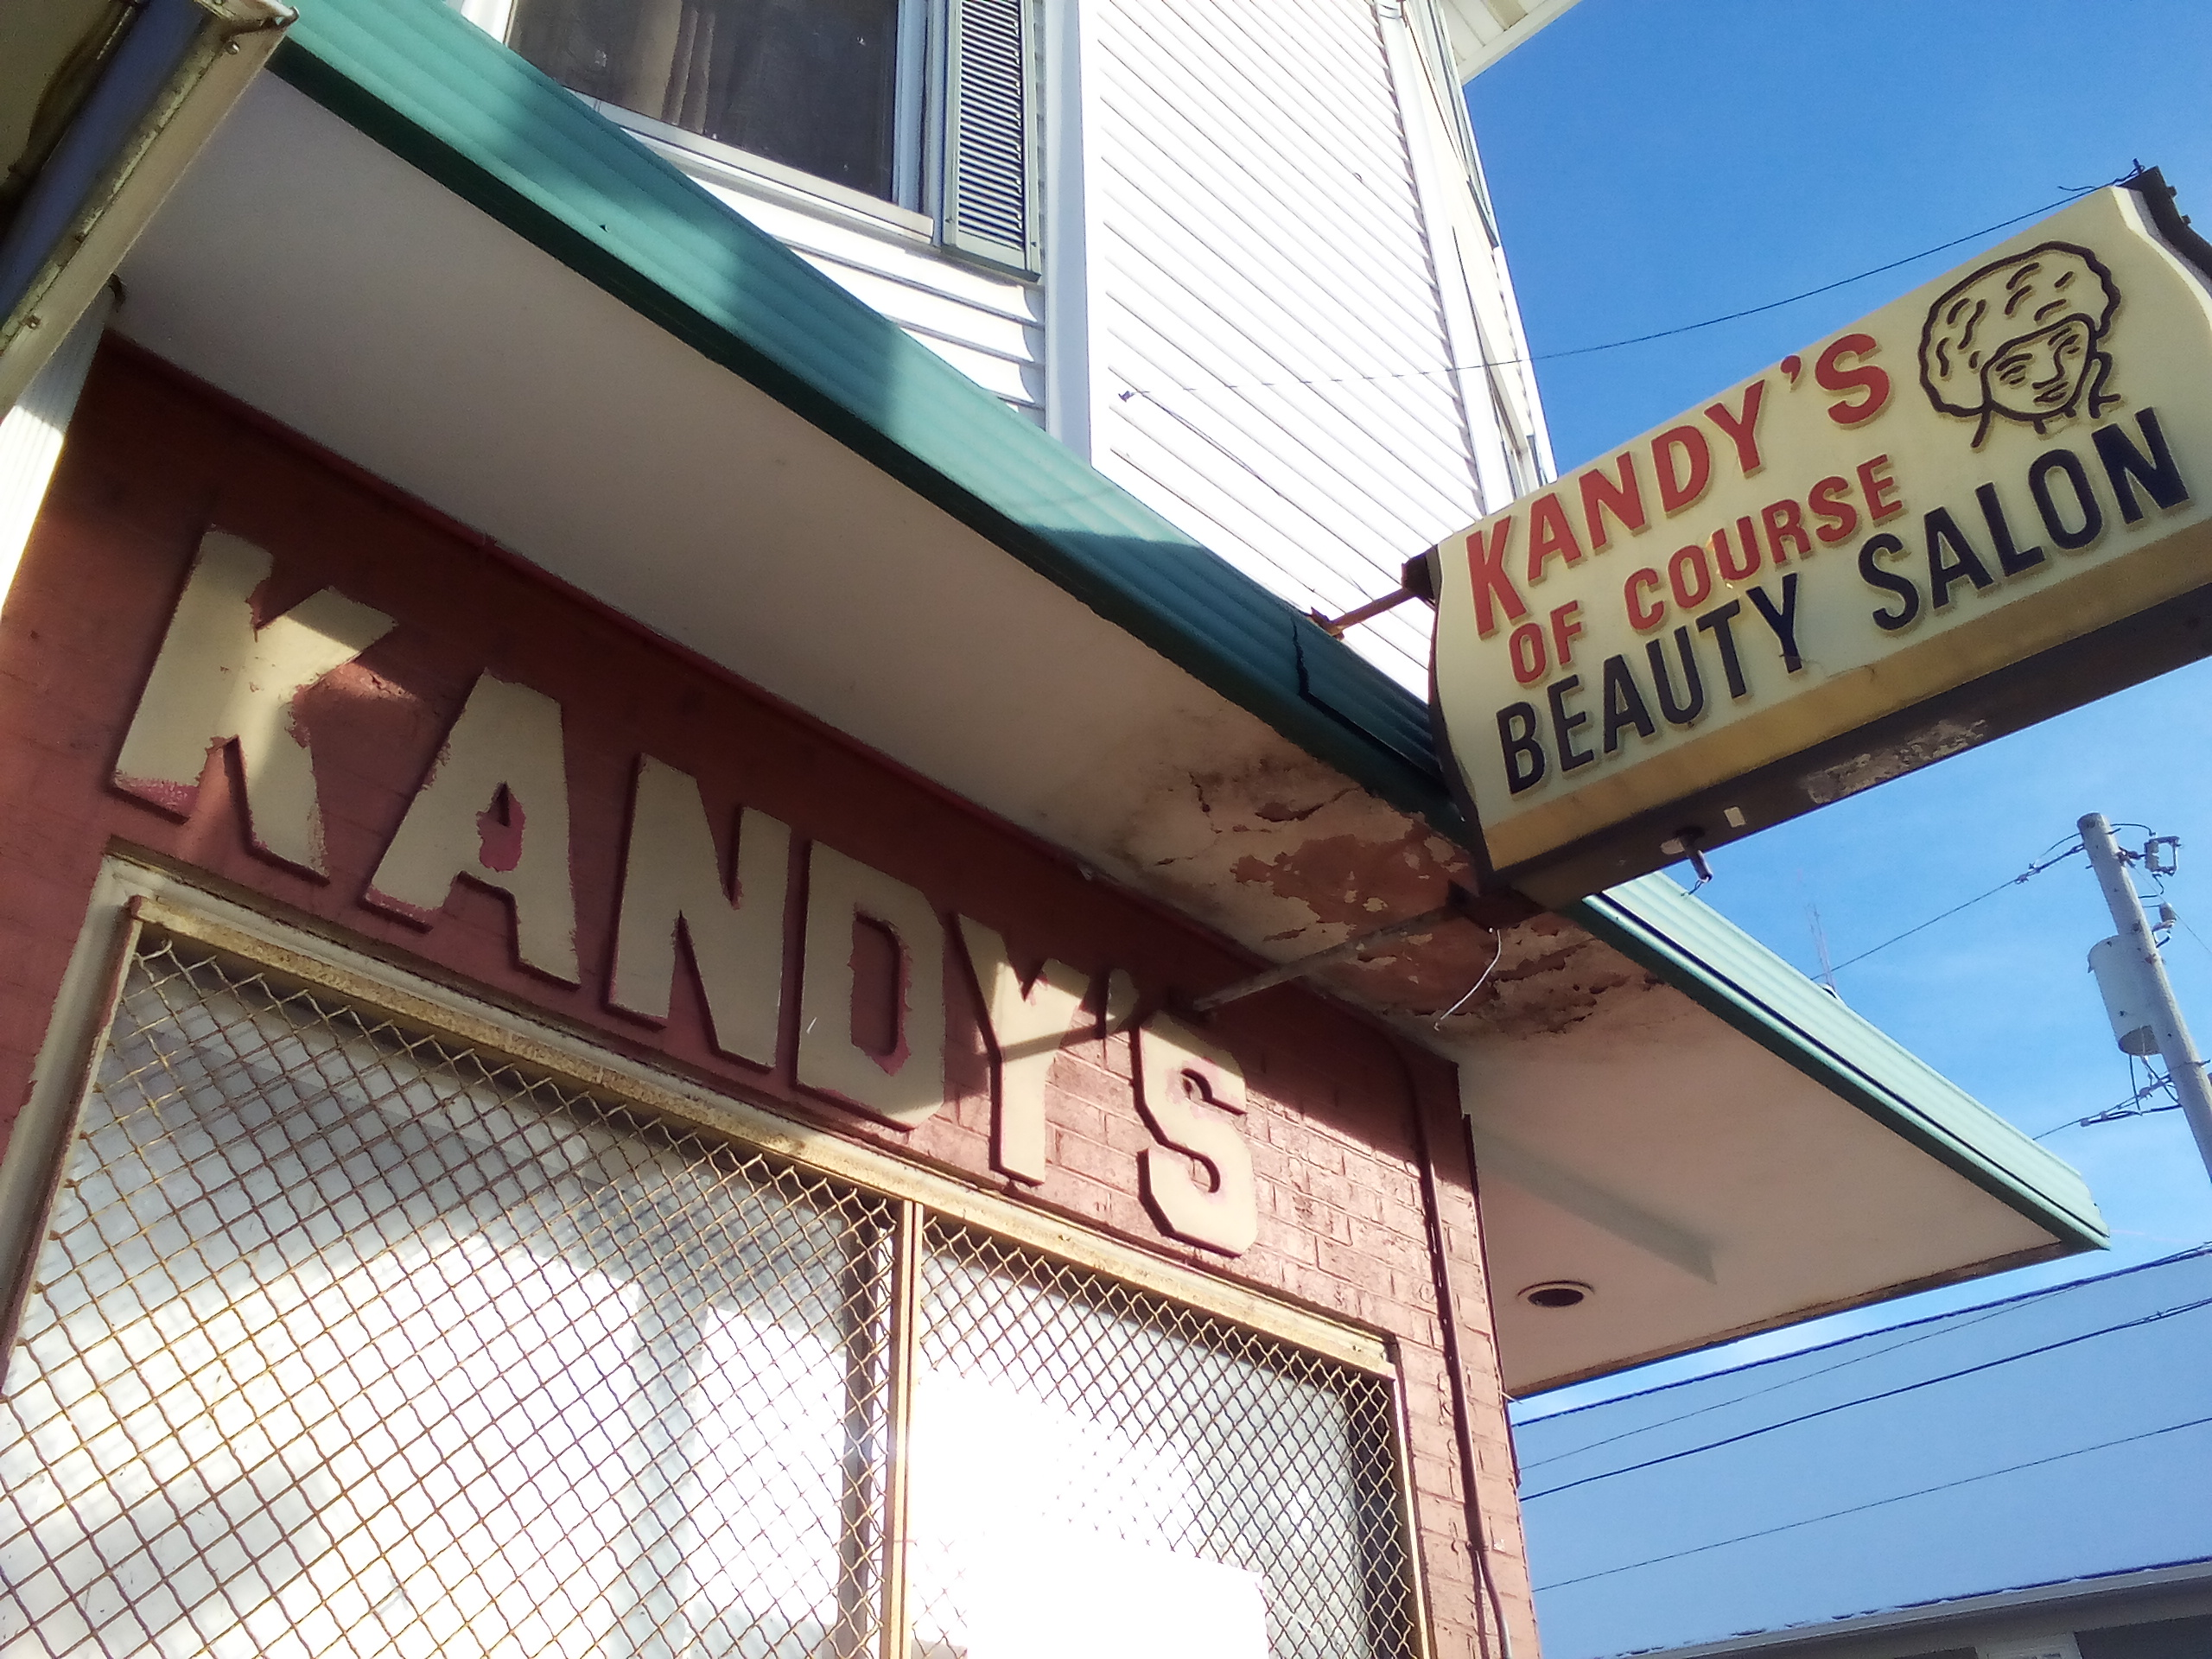 Kandy's of Course